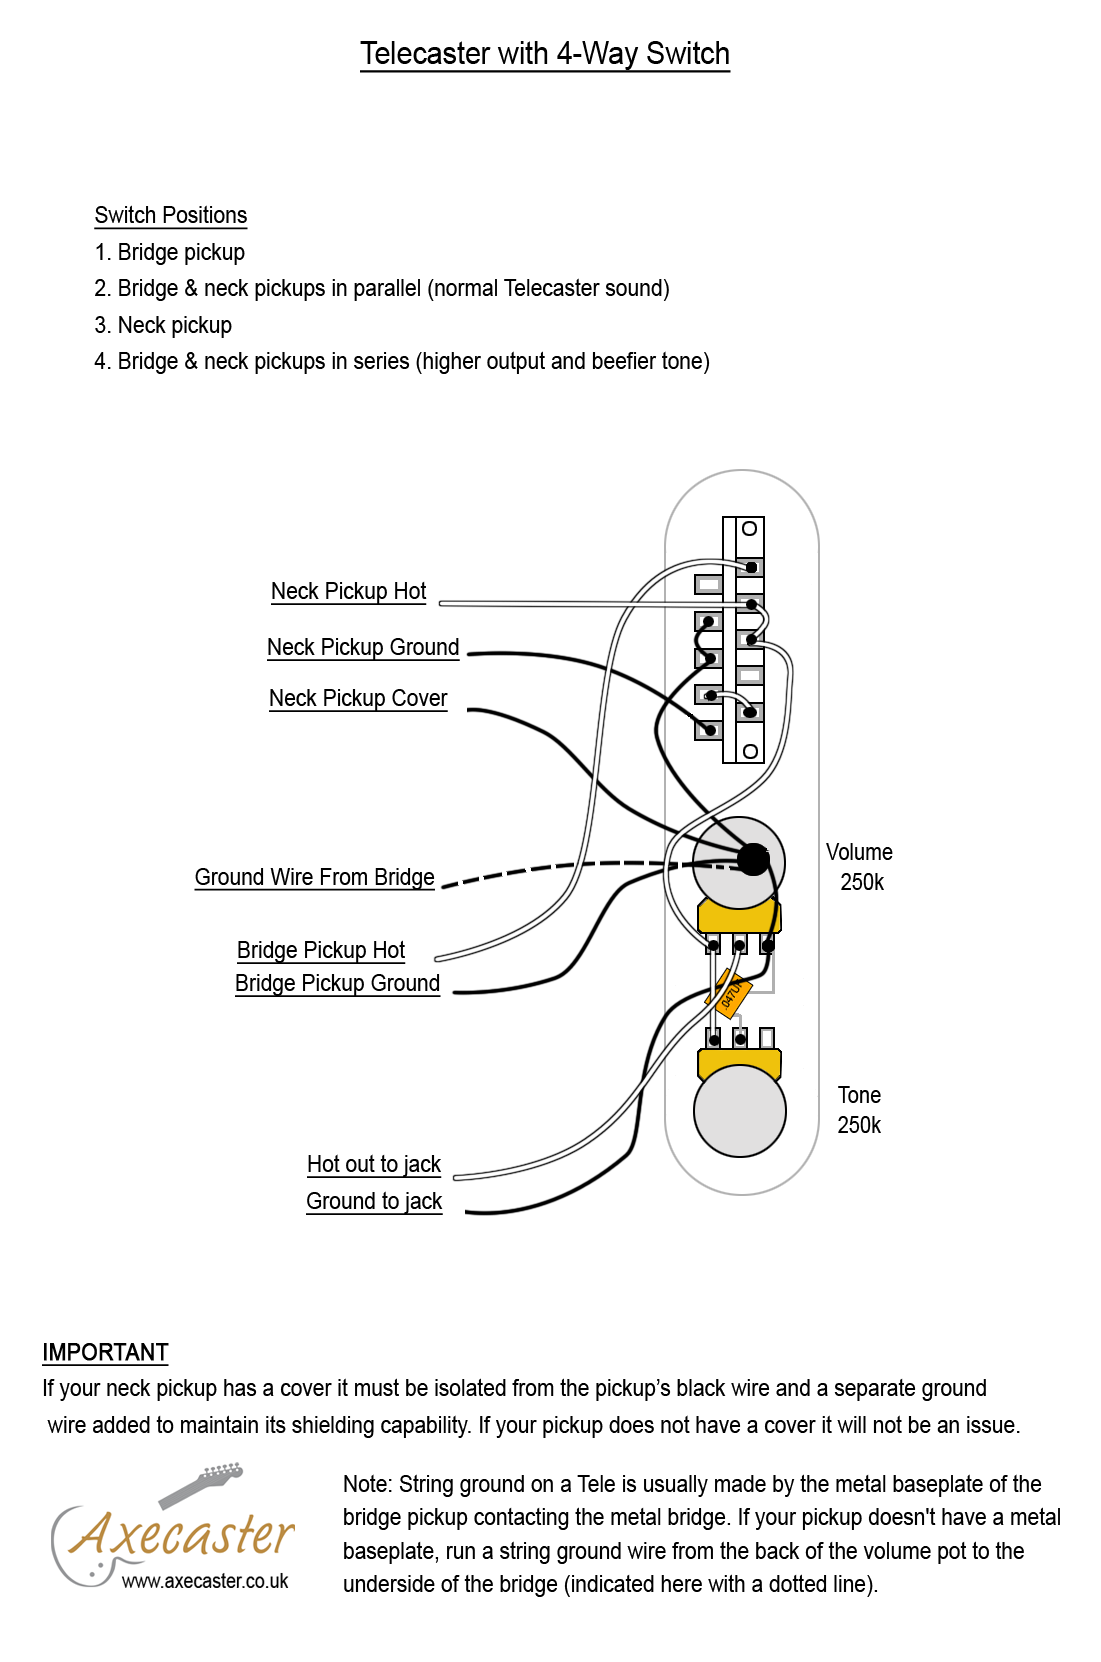 wiring diagrams axecaster build it how you want it wiring diagrams for both bridge parallel neck series and